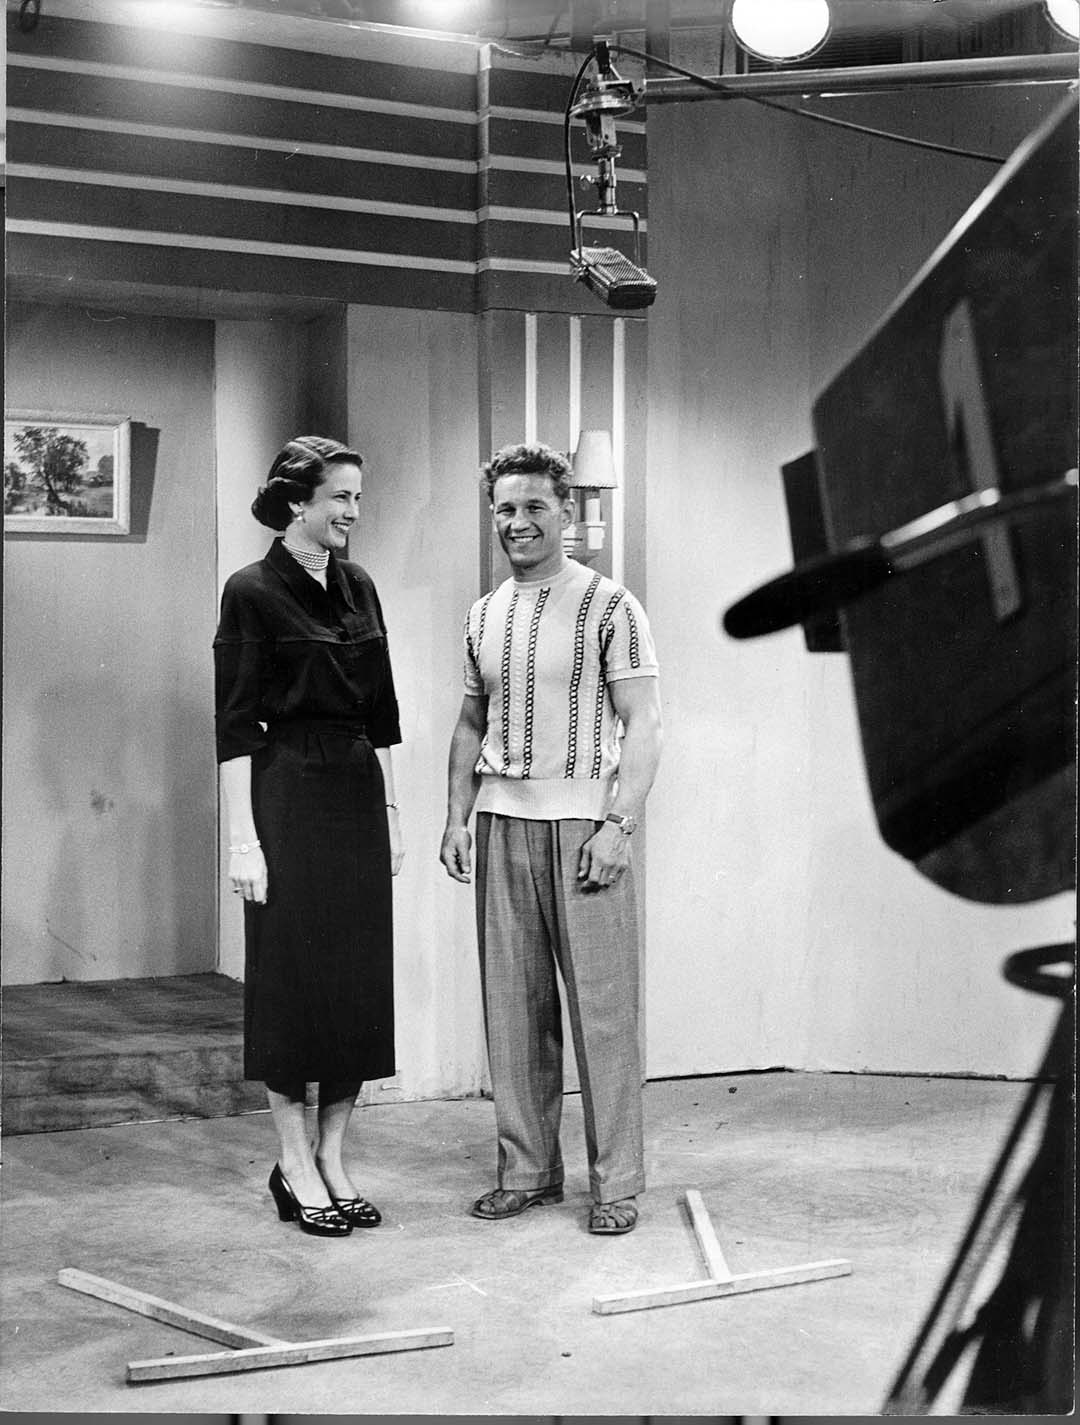 Pankey and Jacques Angelvin on the set of a French TV broadcast